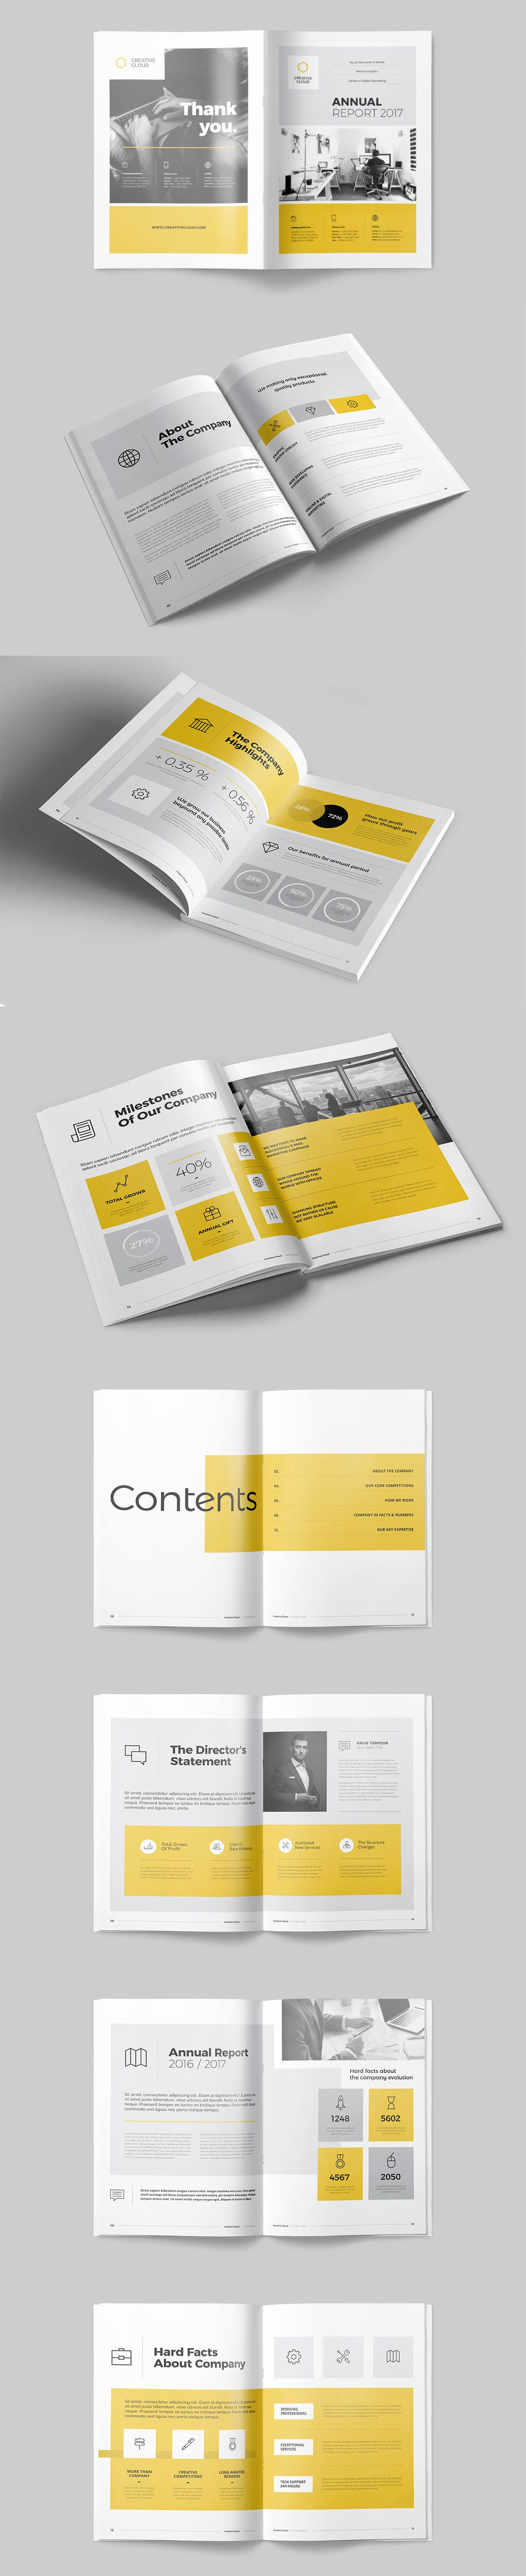 Annual Report Brochure Template InDesign INDD - 16 Pages | LAYOUT ...